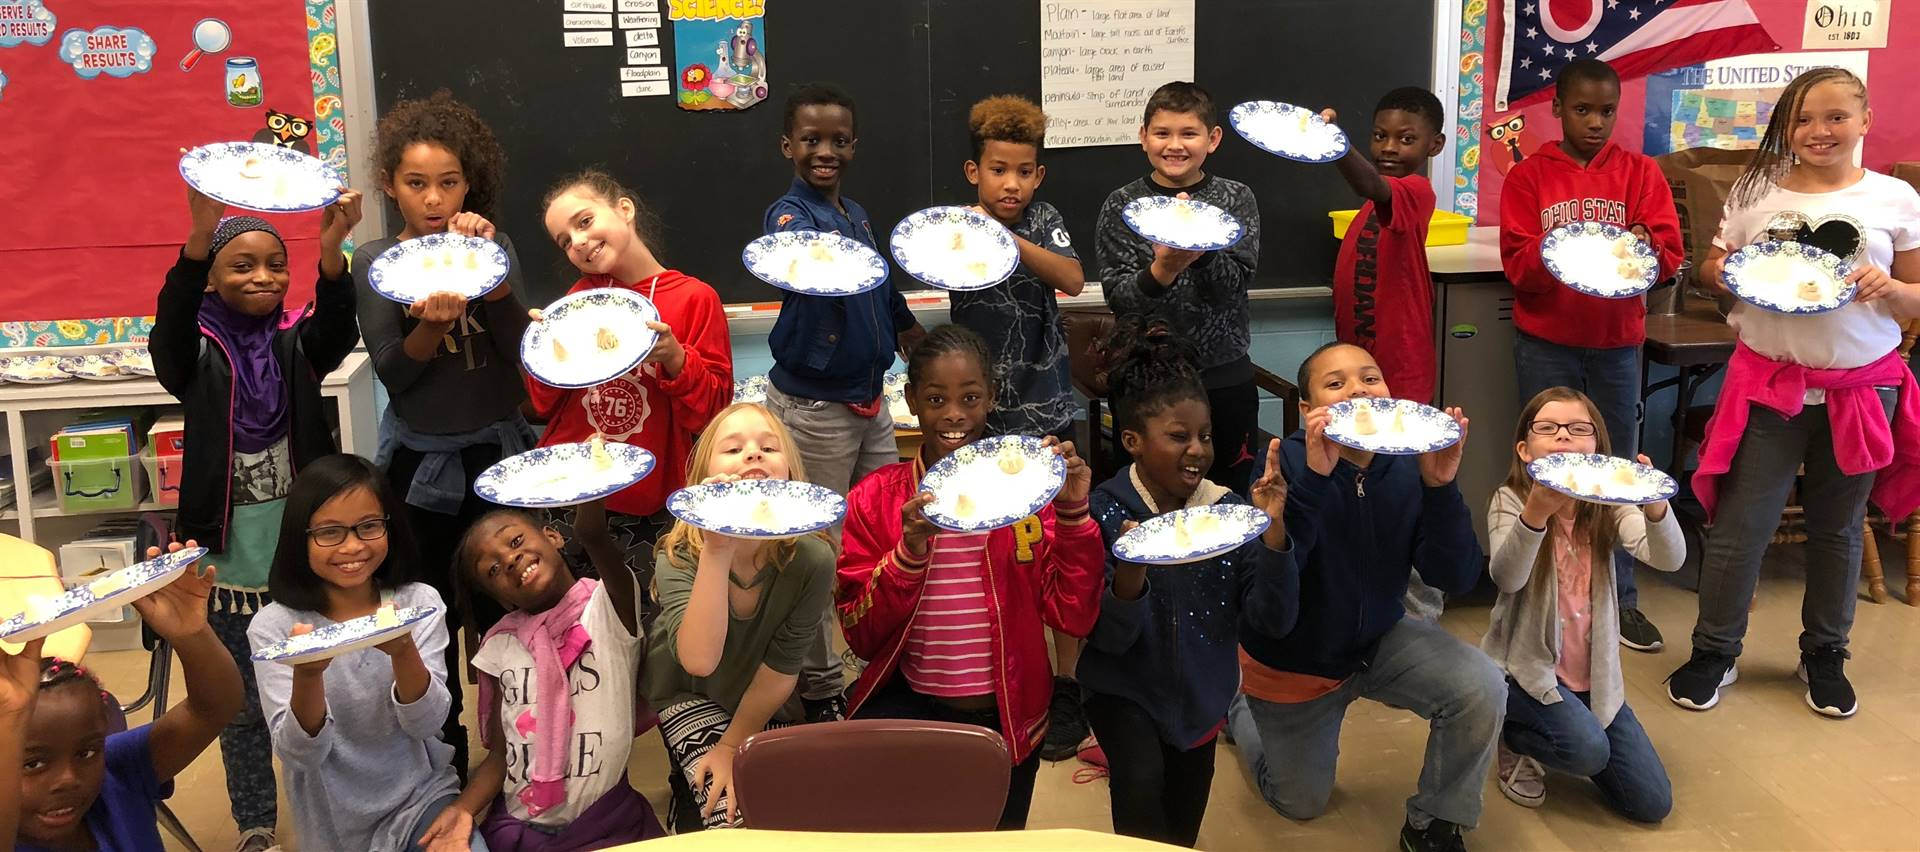 Ms. Schimmoller's class made landforms out of salt dough.